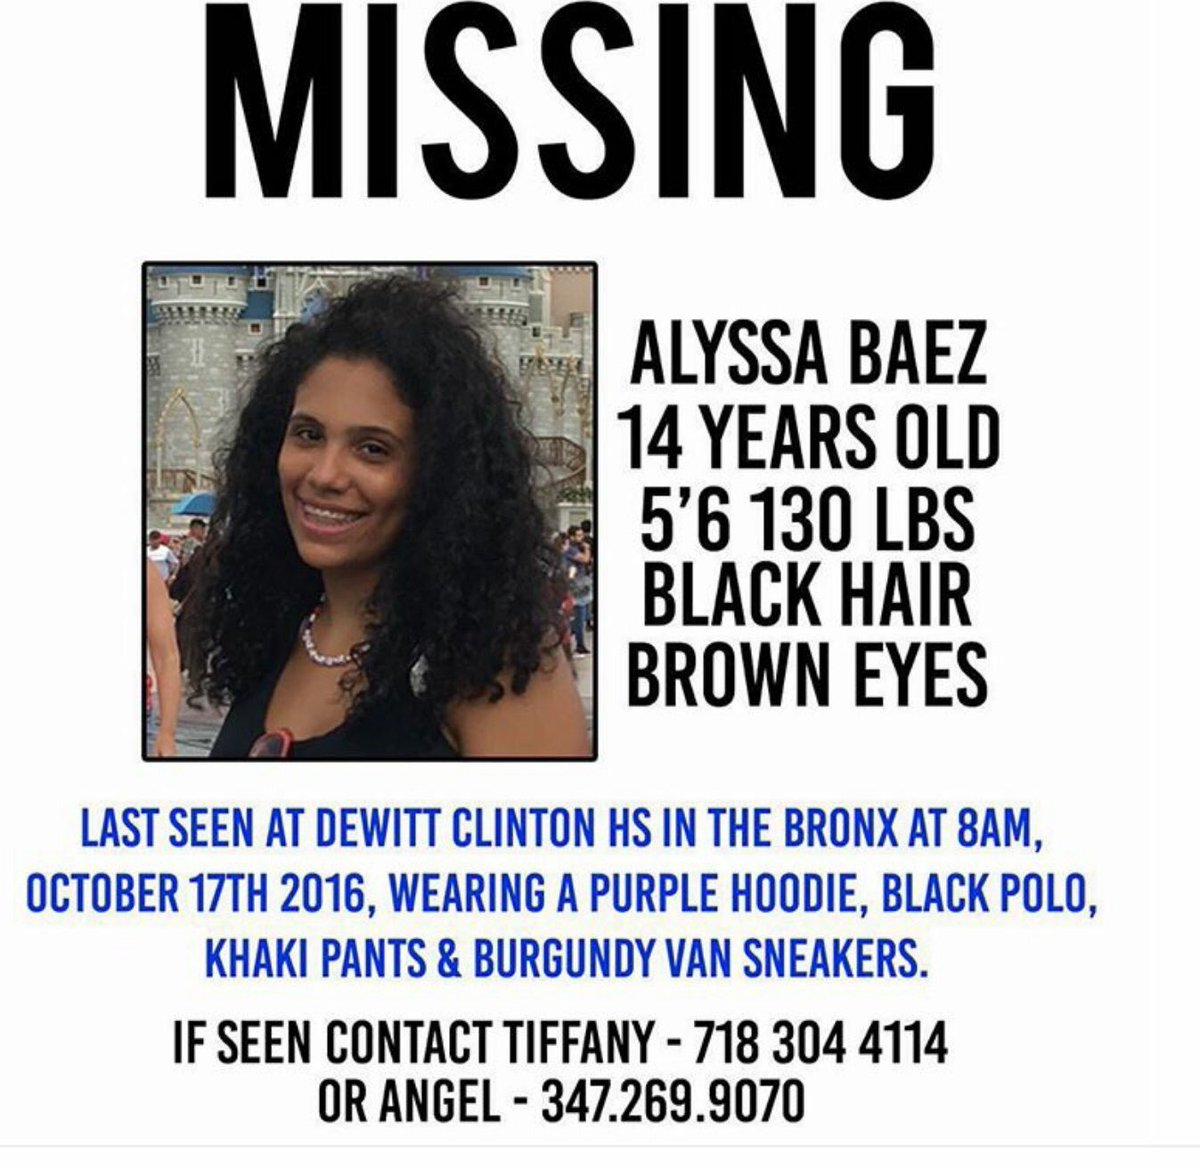 Pls RT: Another Latina teen went missing in the Bronx. This story deserves attention. https://t.co/TtWtITFqXT https://t.co/HU2LoJxRHo